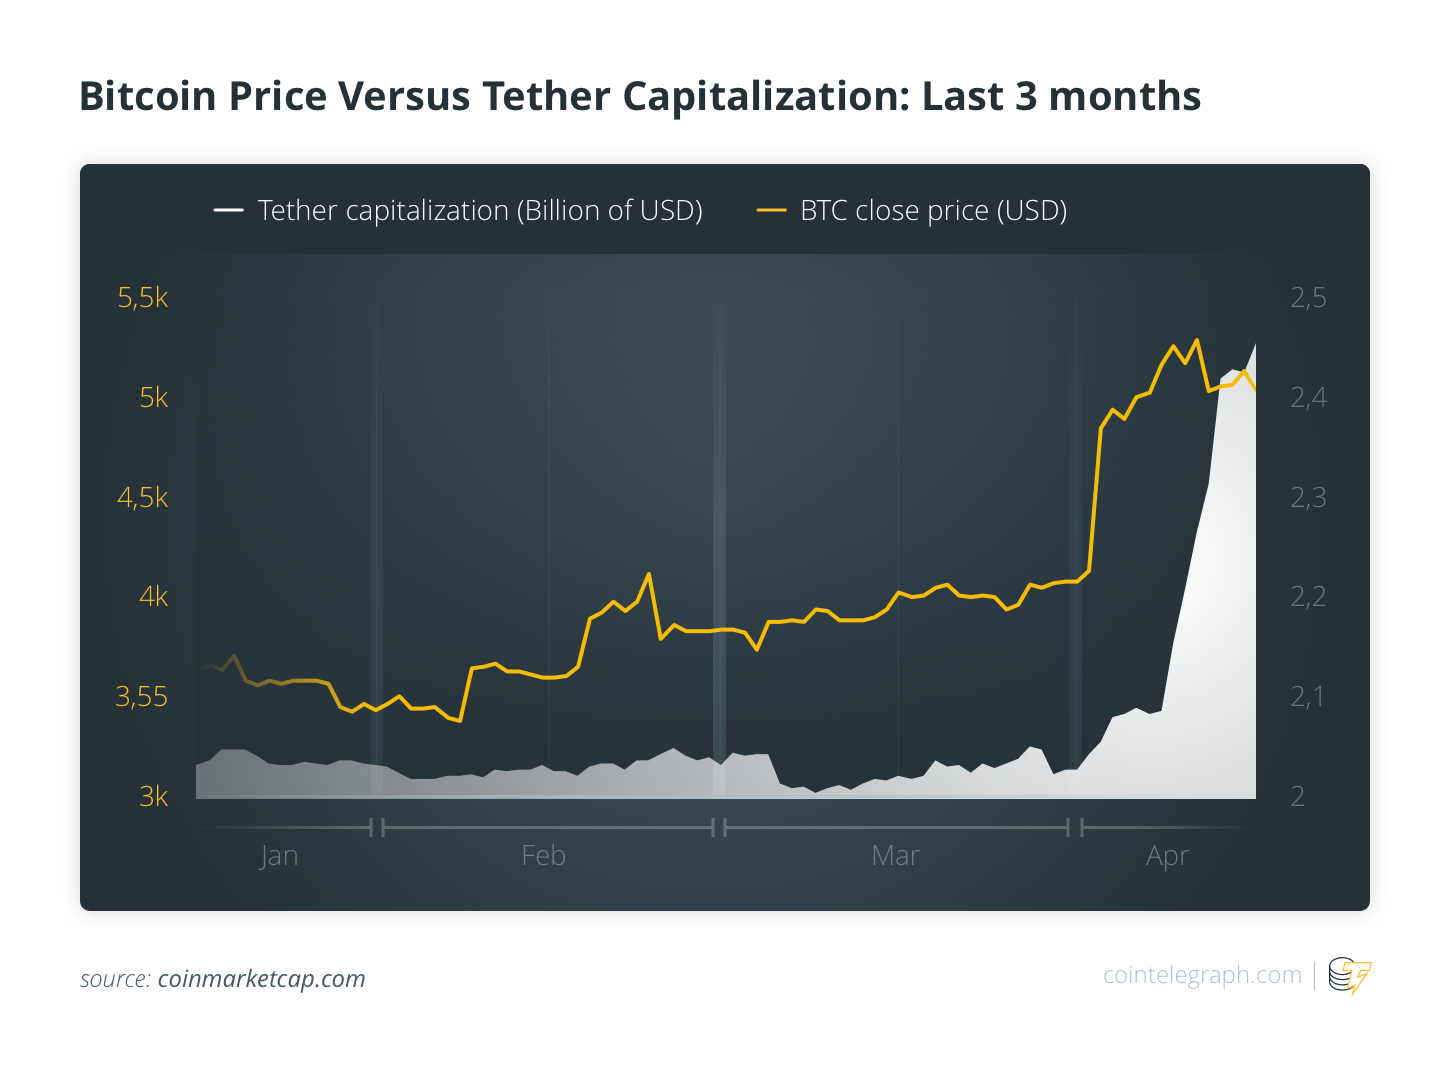 Bitcoin Price Versus Tether Capitalization